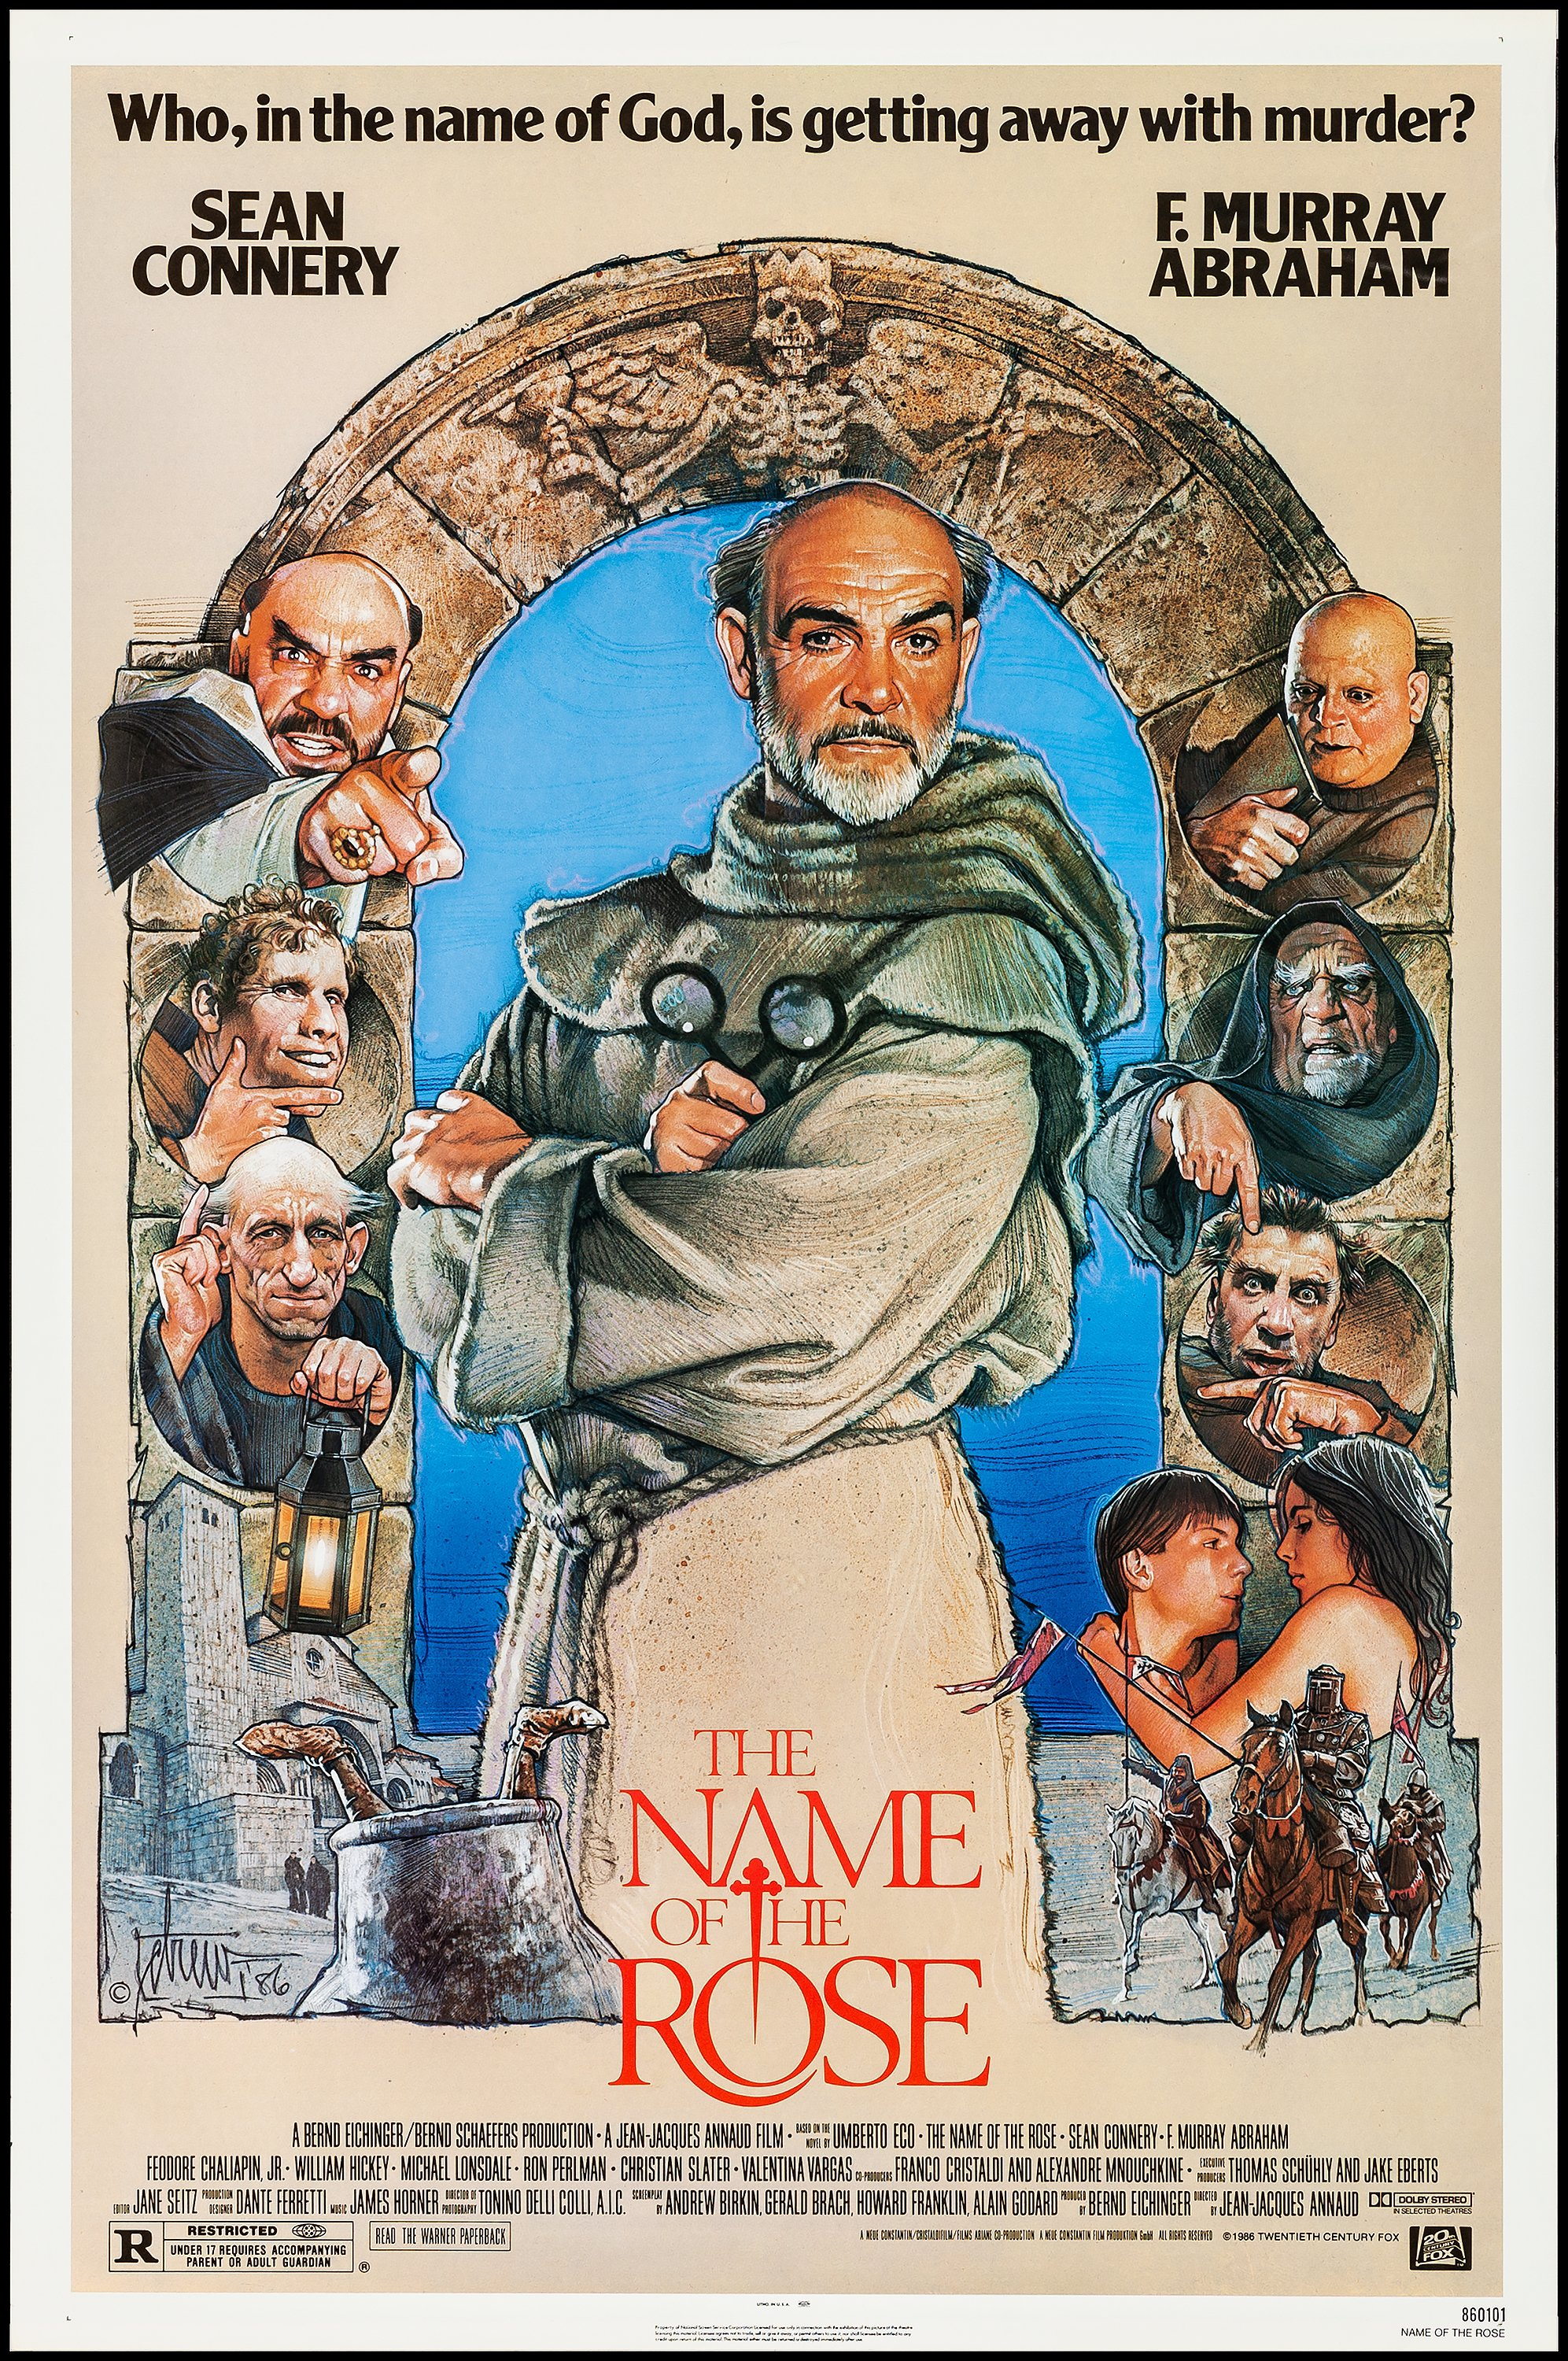 The Name of the Rose & Other Lot (20th Century Fox, 1986)  | Lot #52303 |  Heritage Auctions